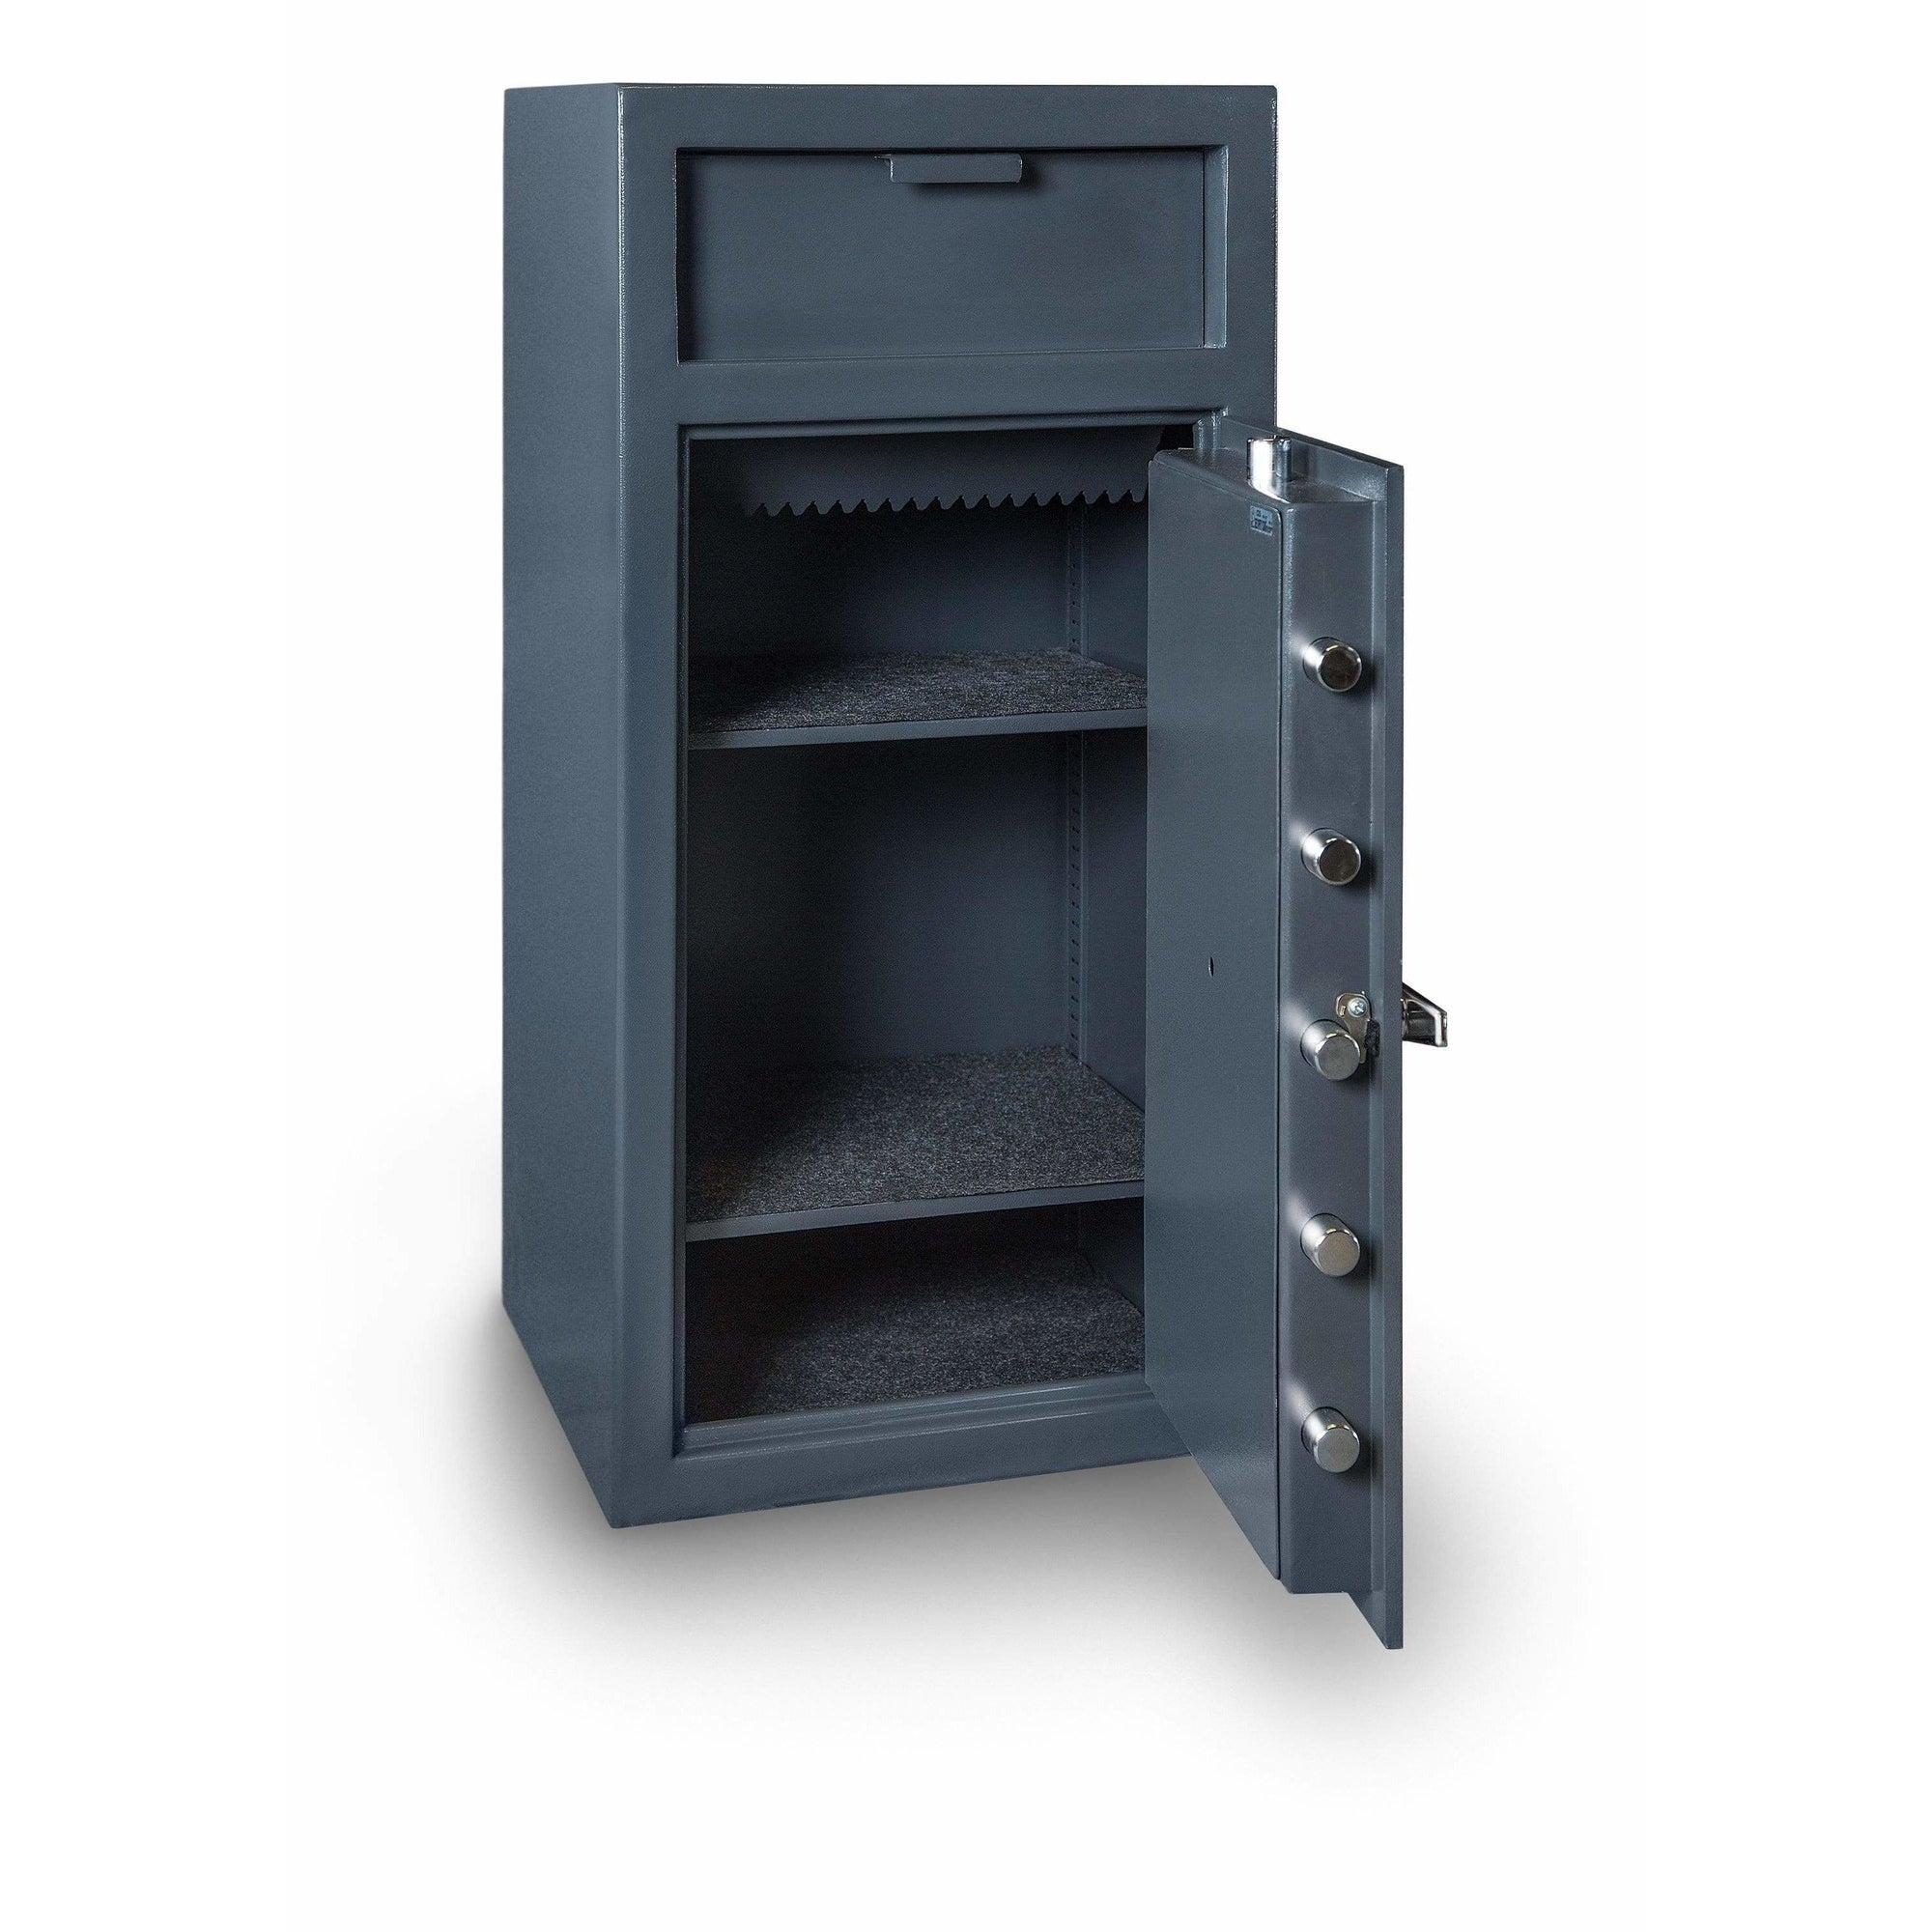 Hollon Safe Deposit Safe Hollon Safe Depository Safe FD-4020E, Heavy Duty B-Rated Drop Safe FD-4020E